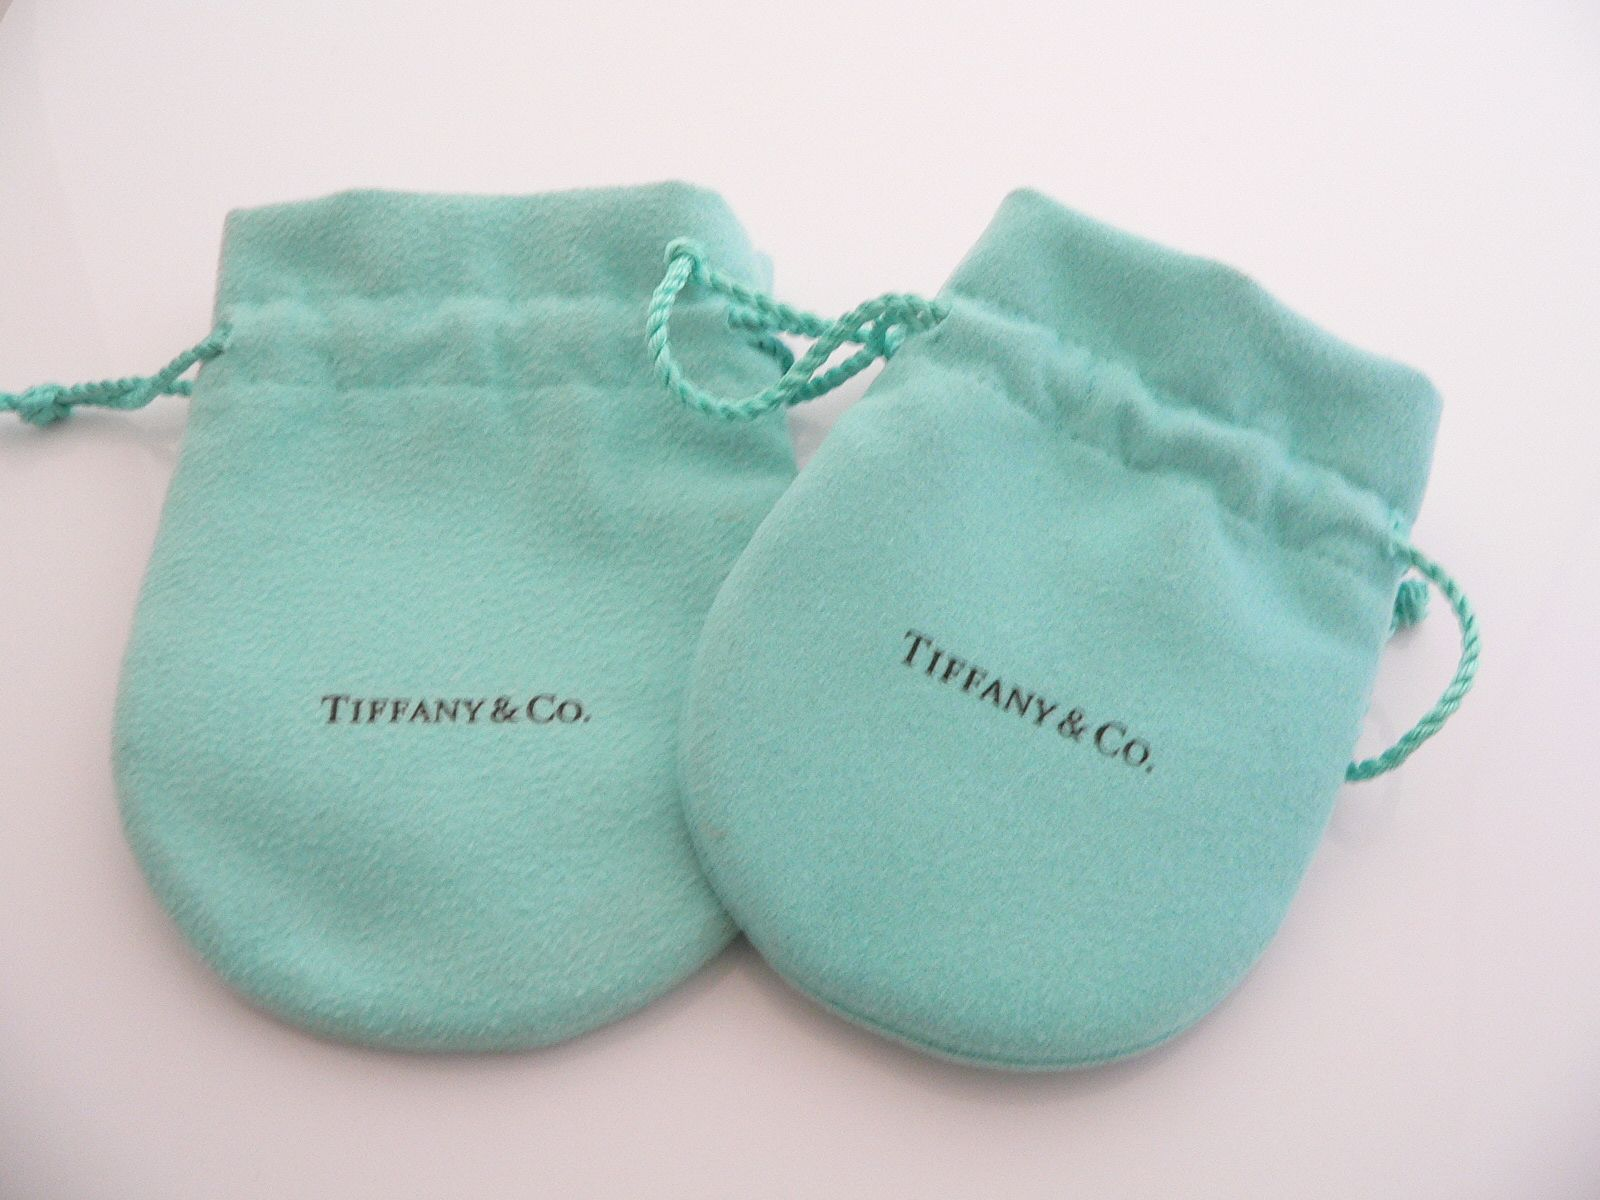 Real or Fake? A Guide to Buying Tiffany & Co. Pouches